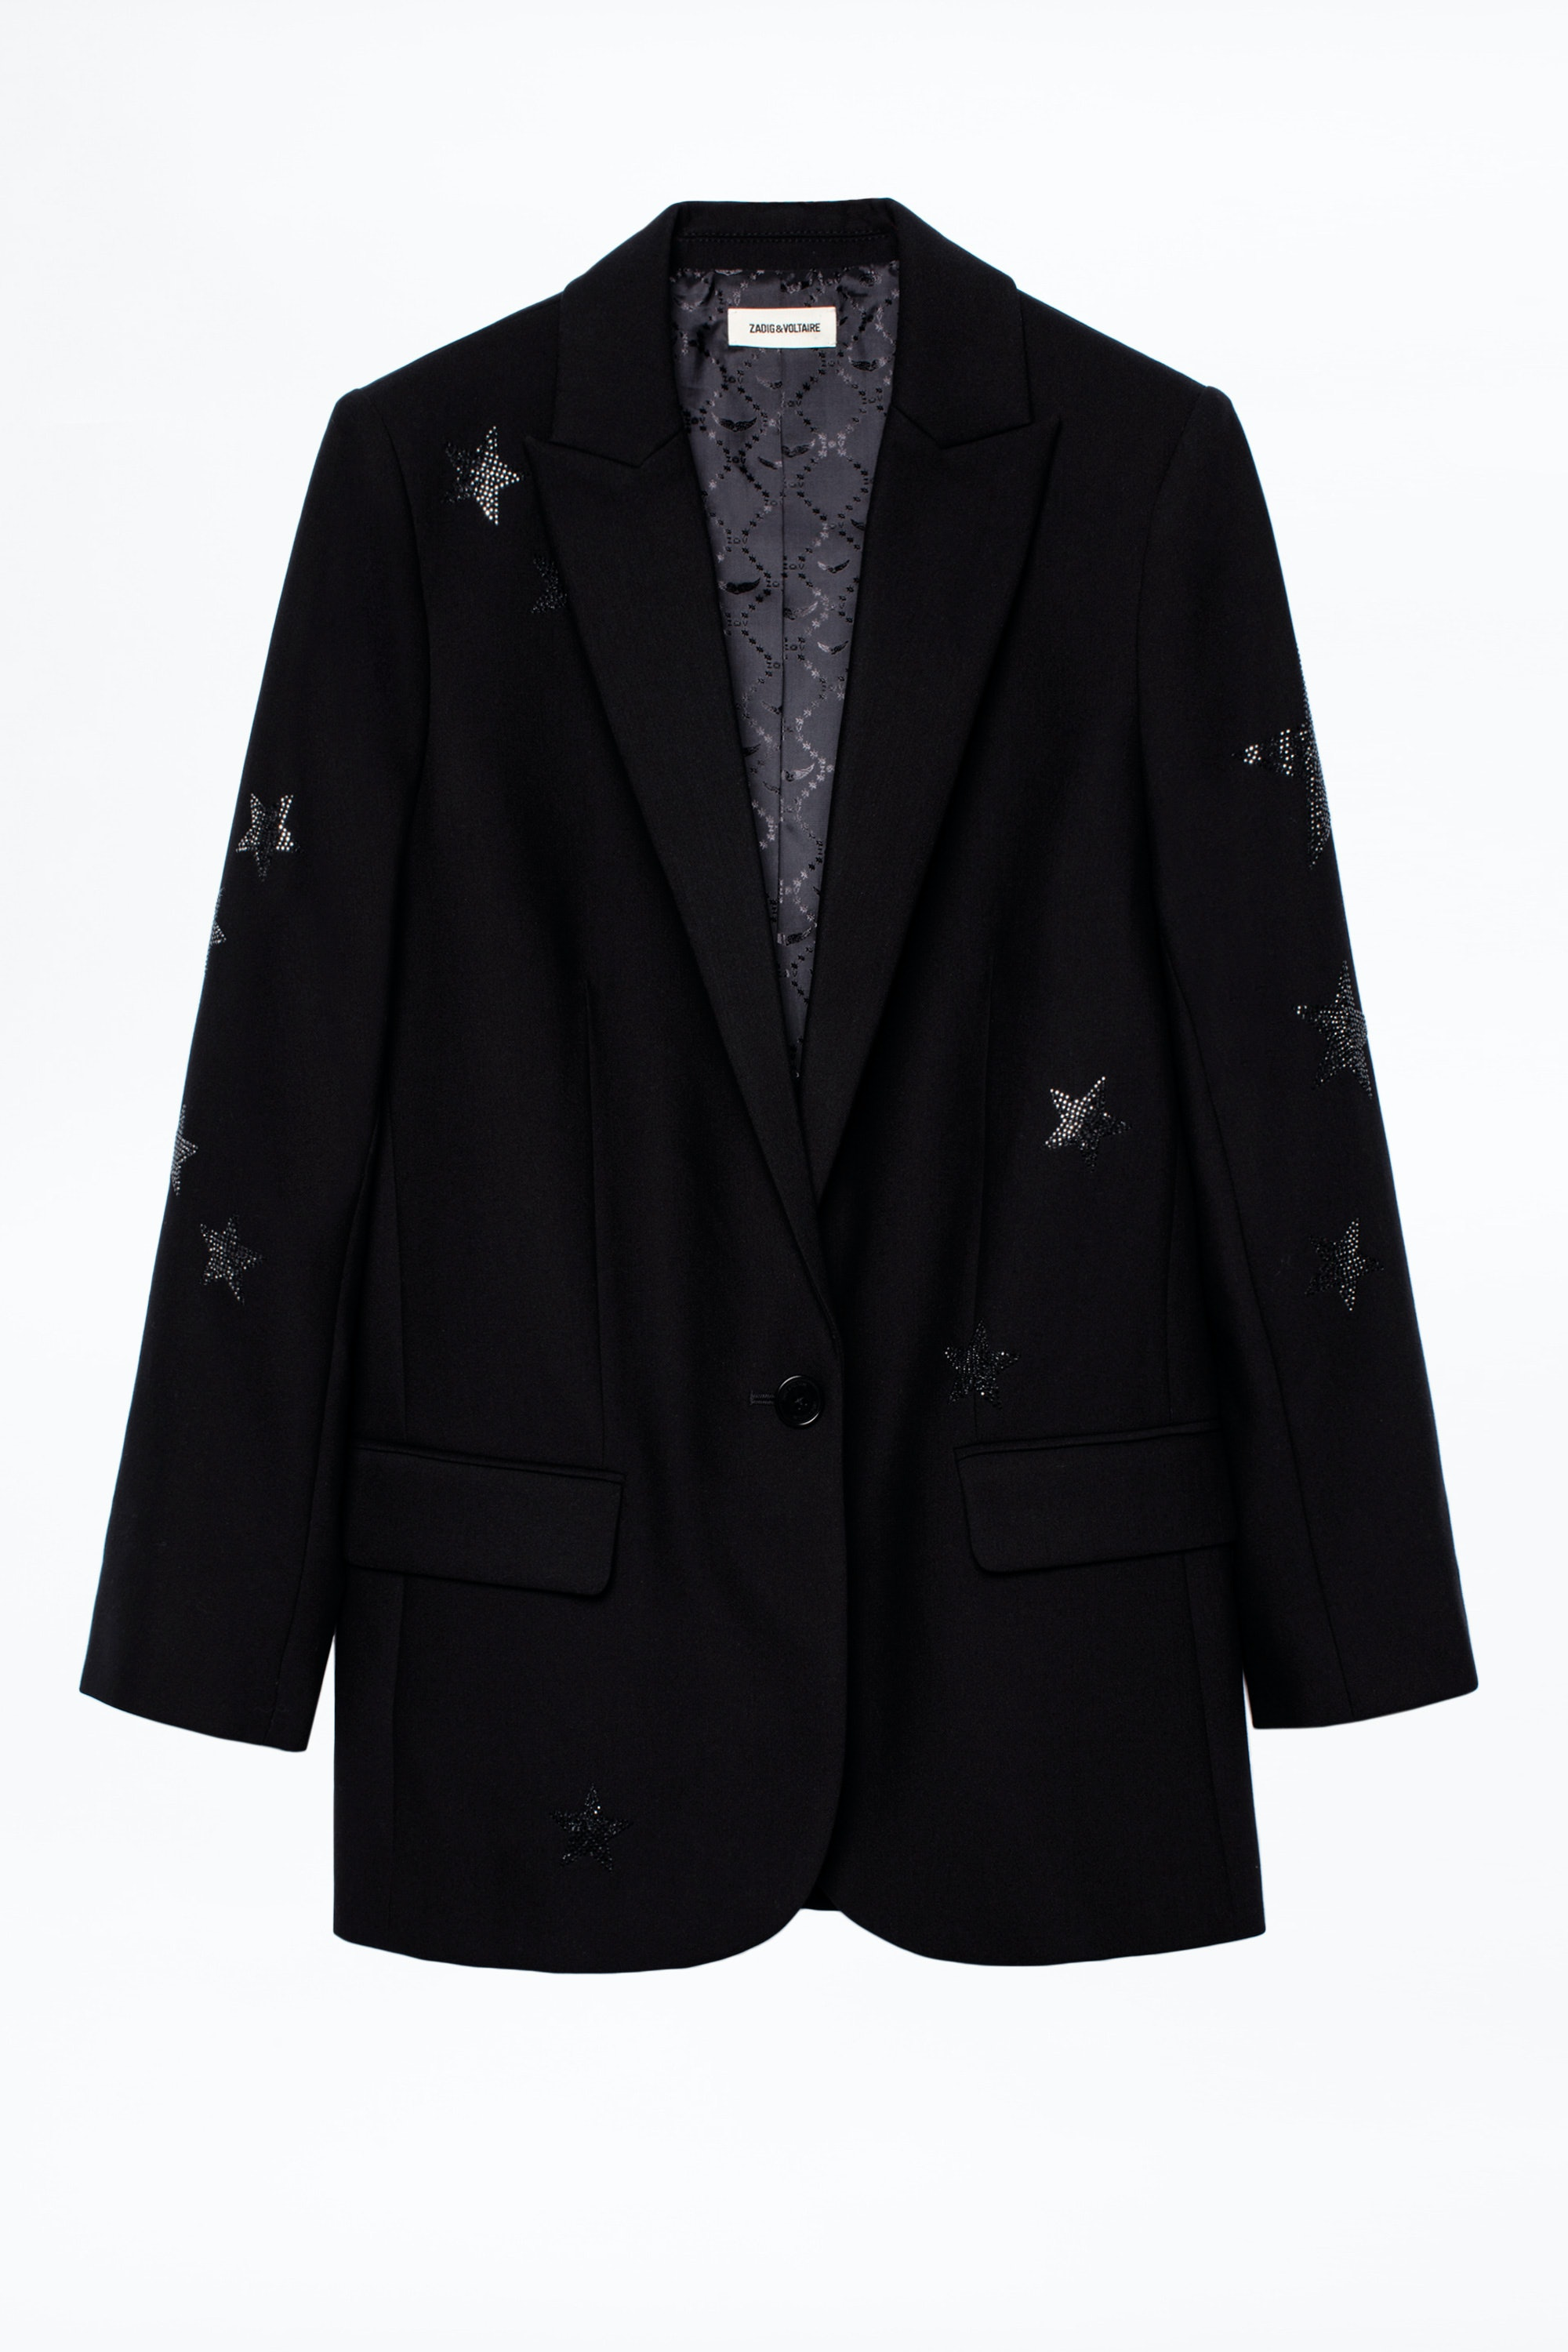 Viva Bis Star Jacket